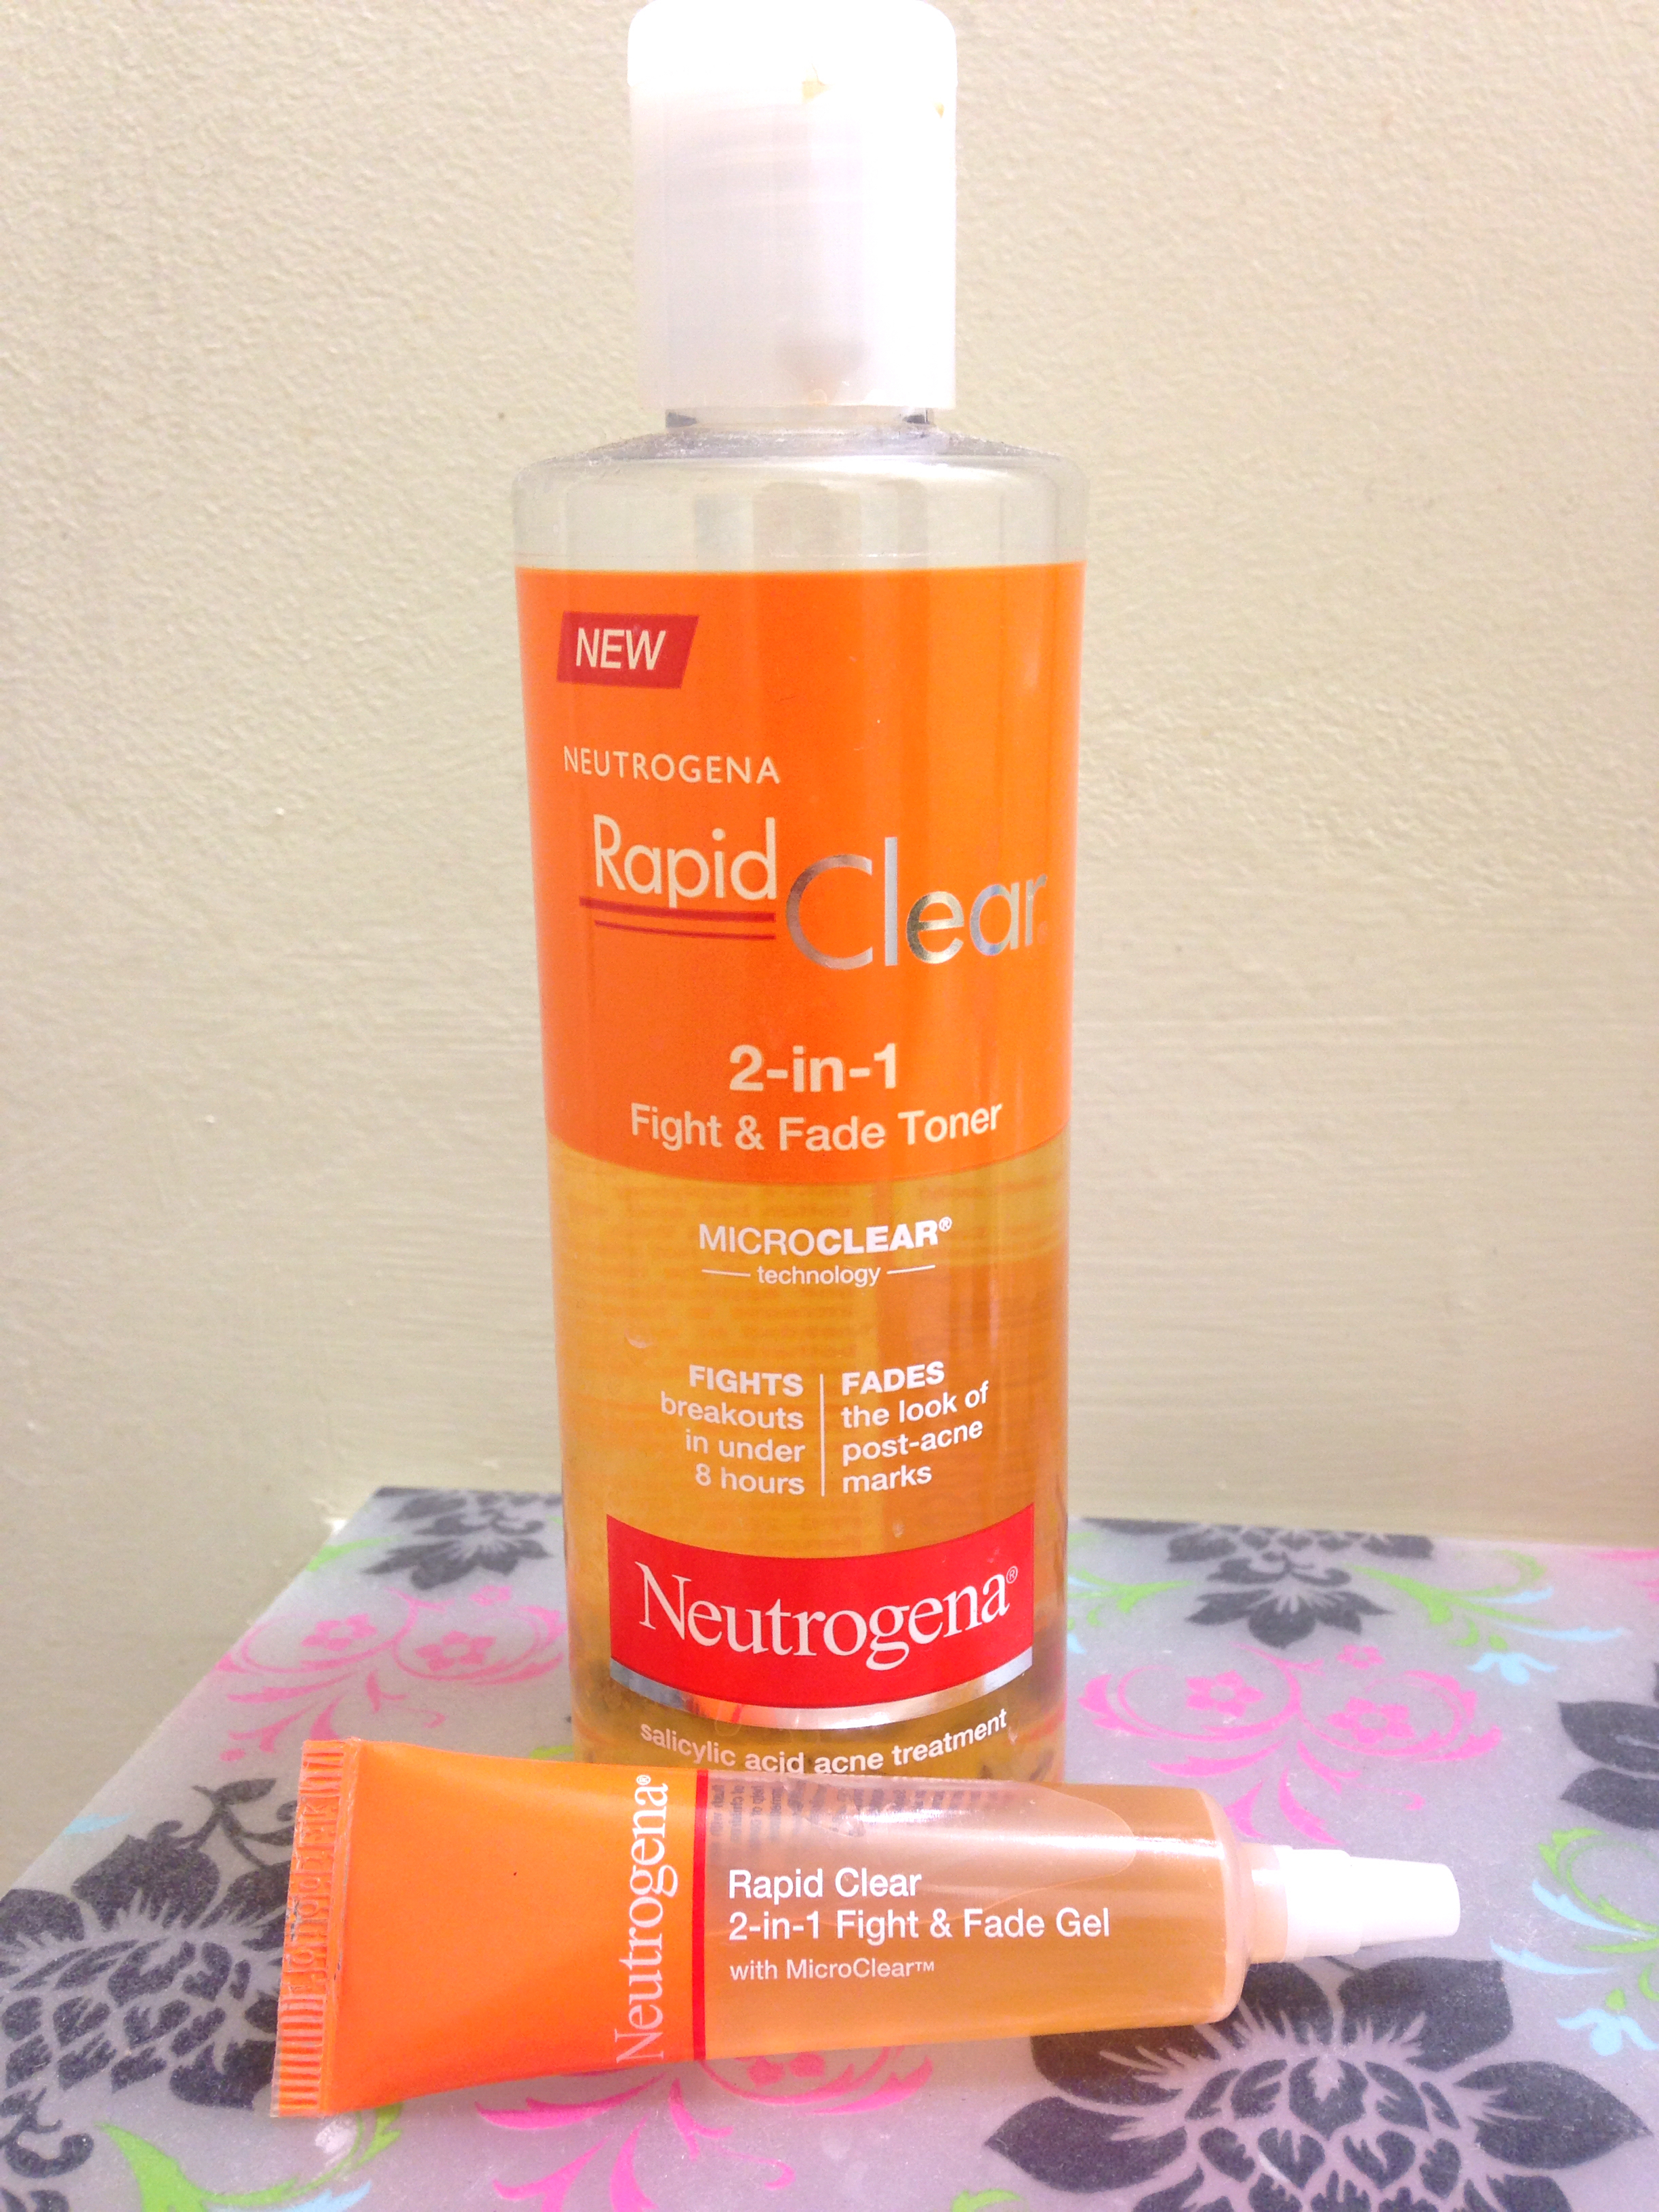 Review: Neutrogena Fight & Fade 2-in-1 Toner and 2-in-1 Fight & Fade Gel